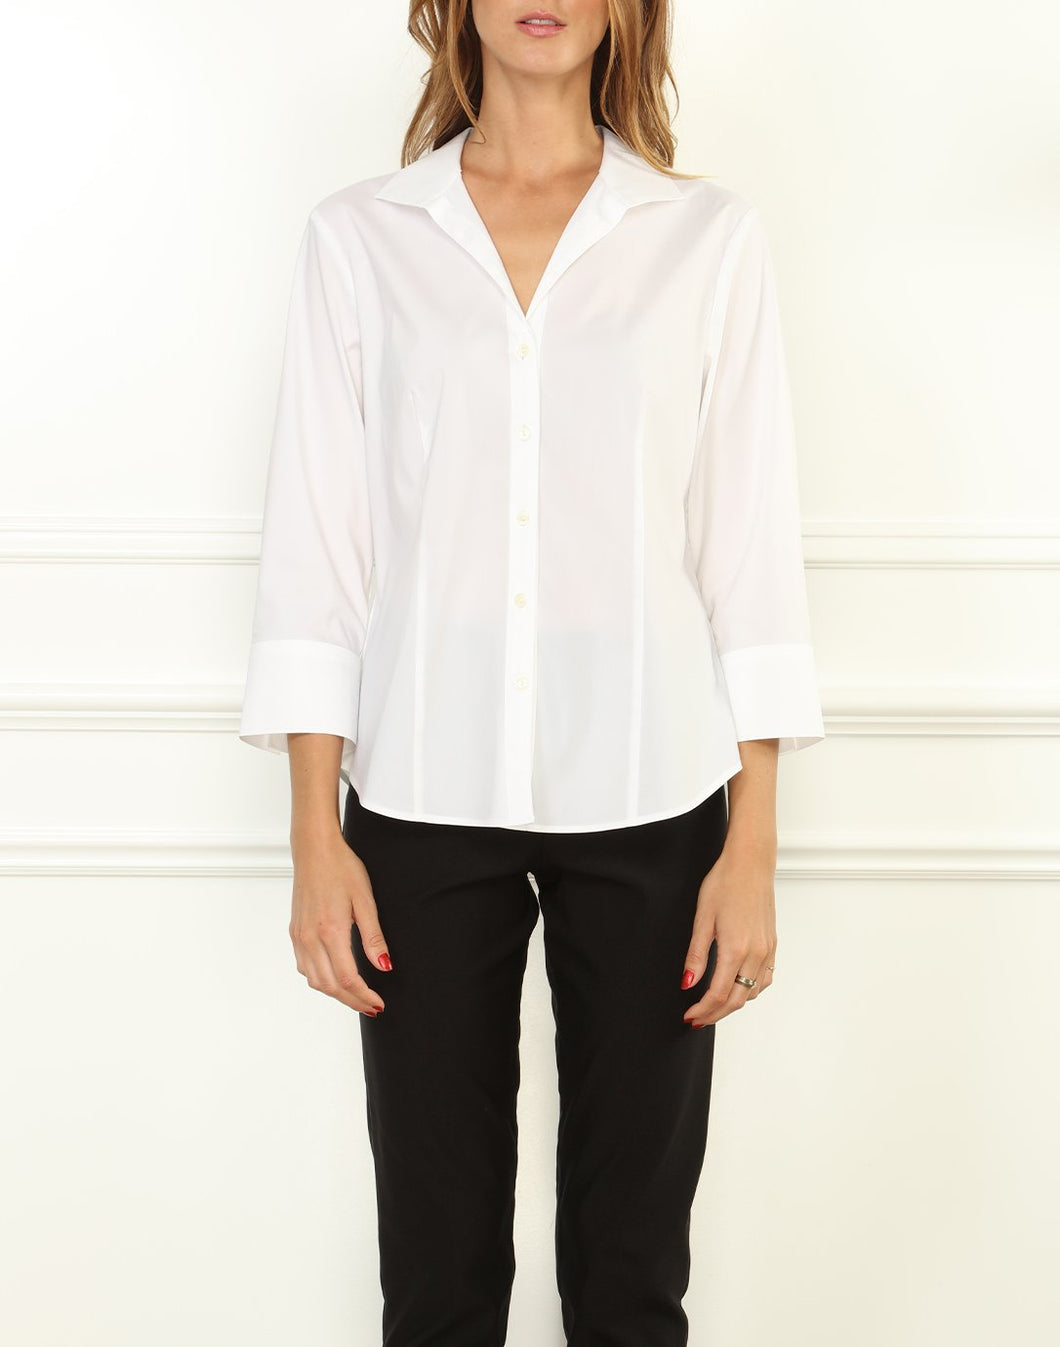 Joselyn Stretch Luxe Cotton 3/4 Sleeve Shirt